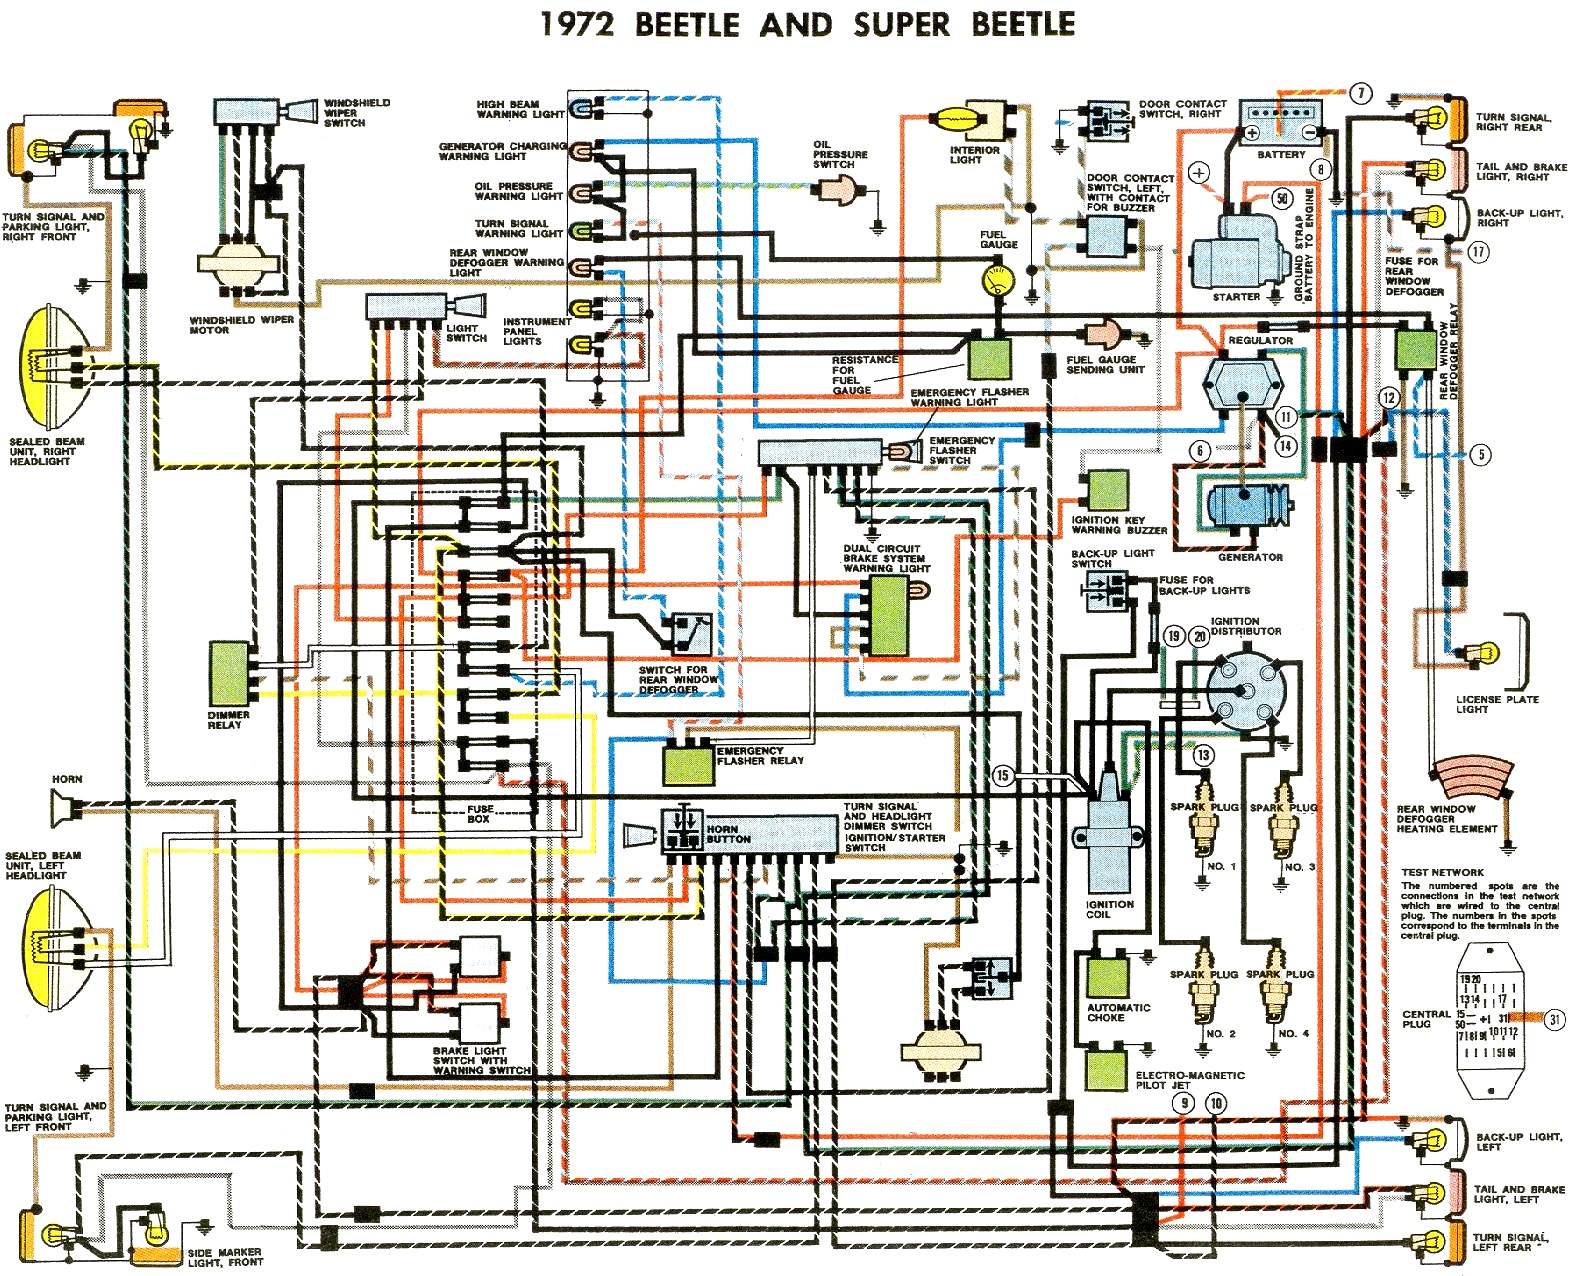 1972 beetle wiring diagram thegoldenbug com rh thegoldenbug com  wiring diagram for 1972 super beetle